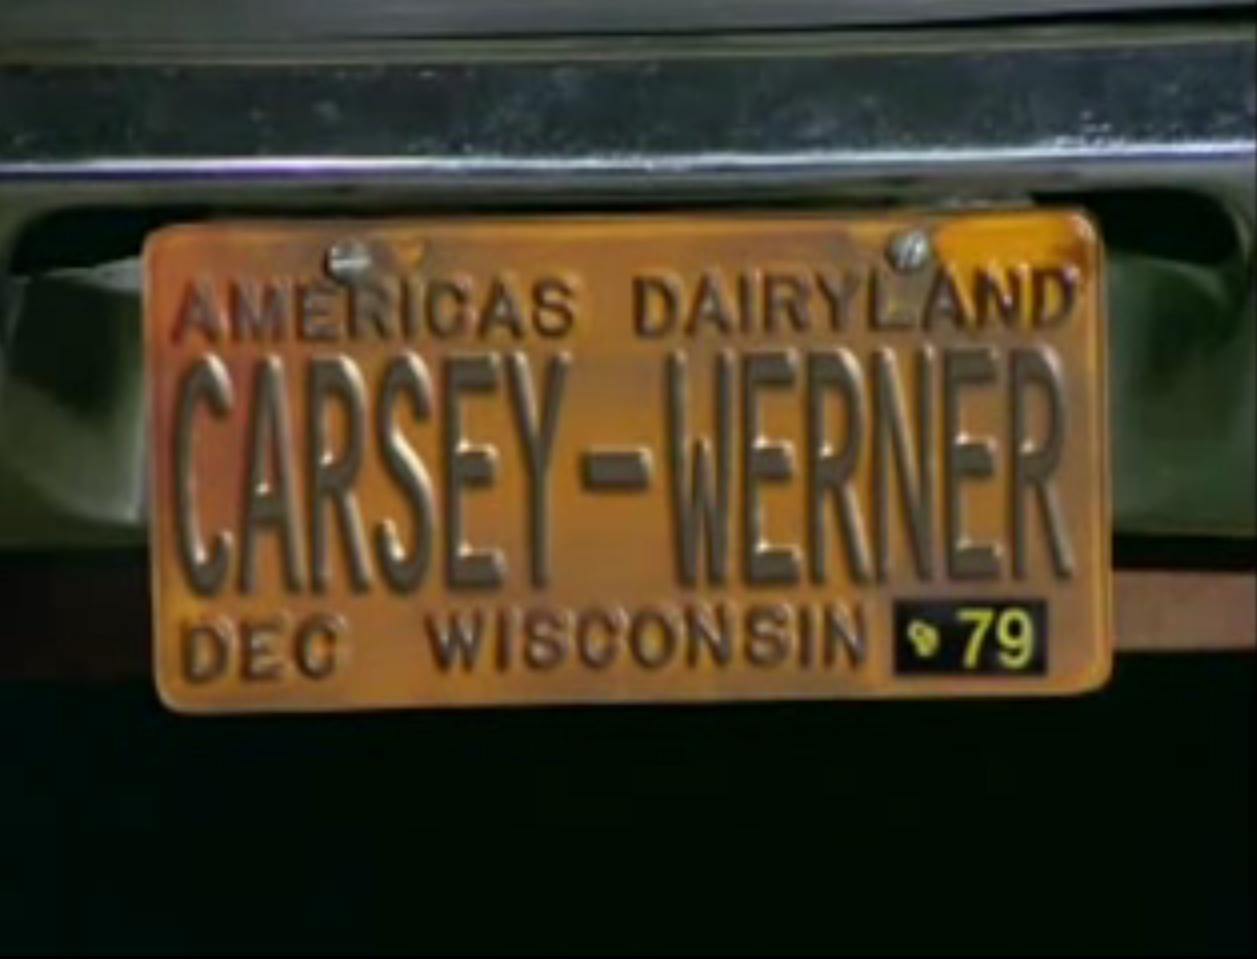 Carsey-Werner Productions